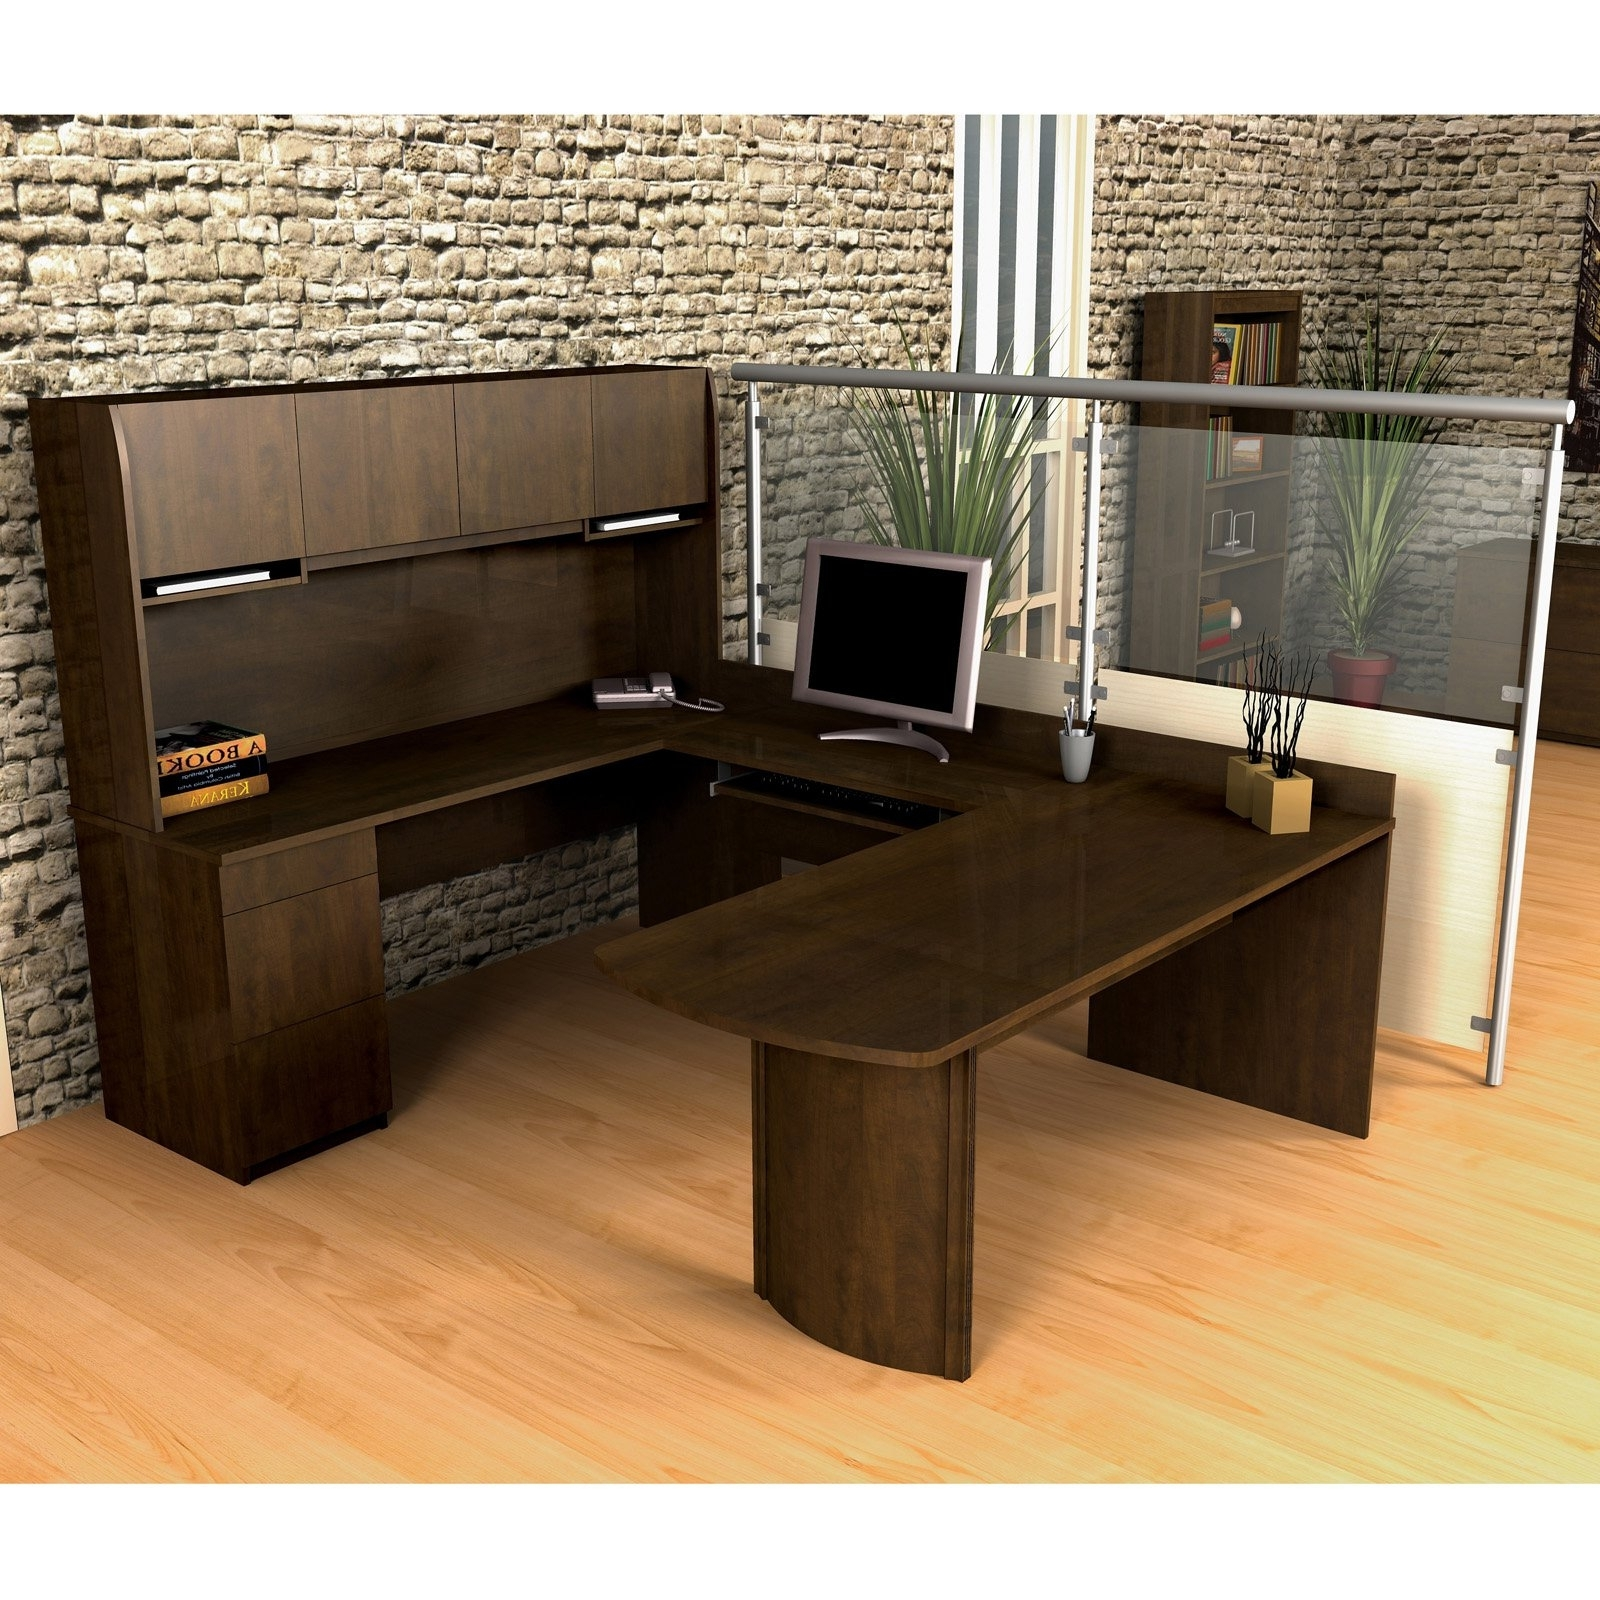 U Shaped Computer Desks Within Widely Used U Shaped Computer Desk Plans — Desk Design : Executive U Shaped (Gallery 12 of 20)